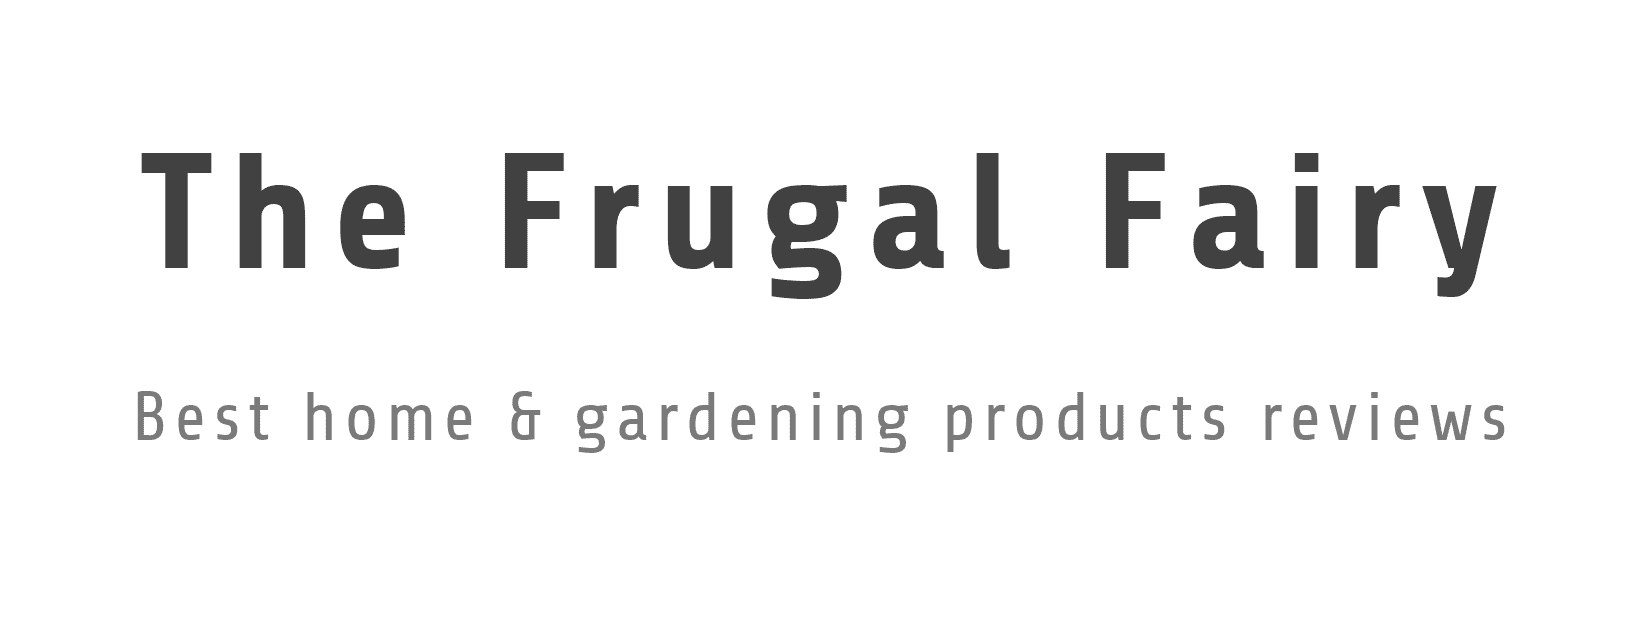 The Frugal Fairy